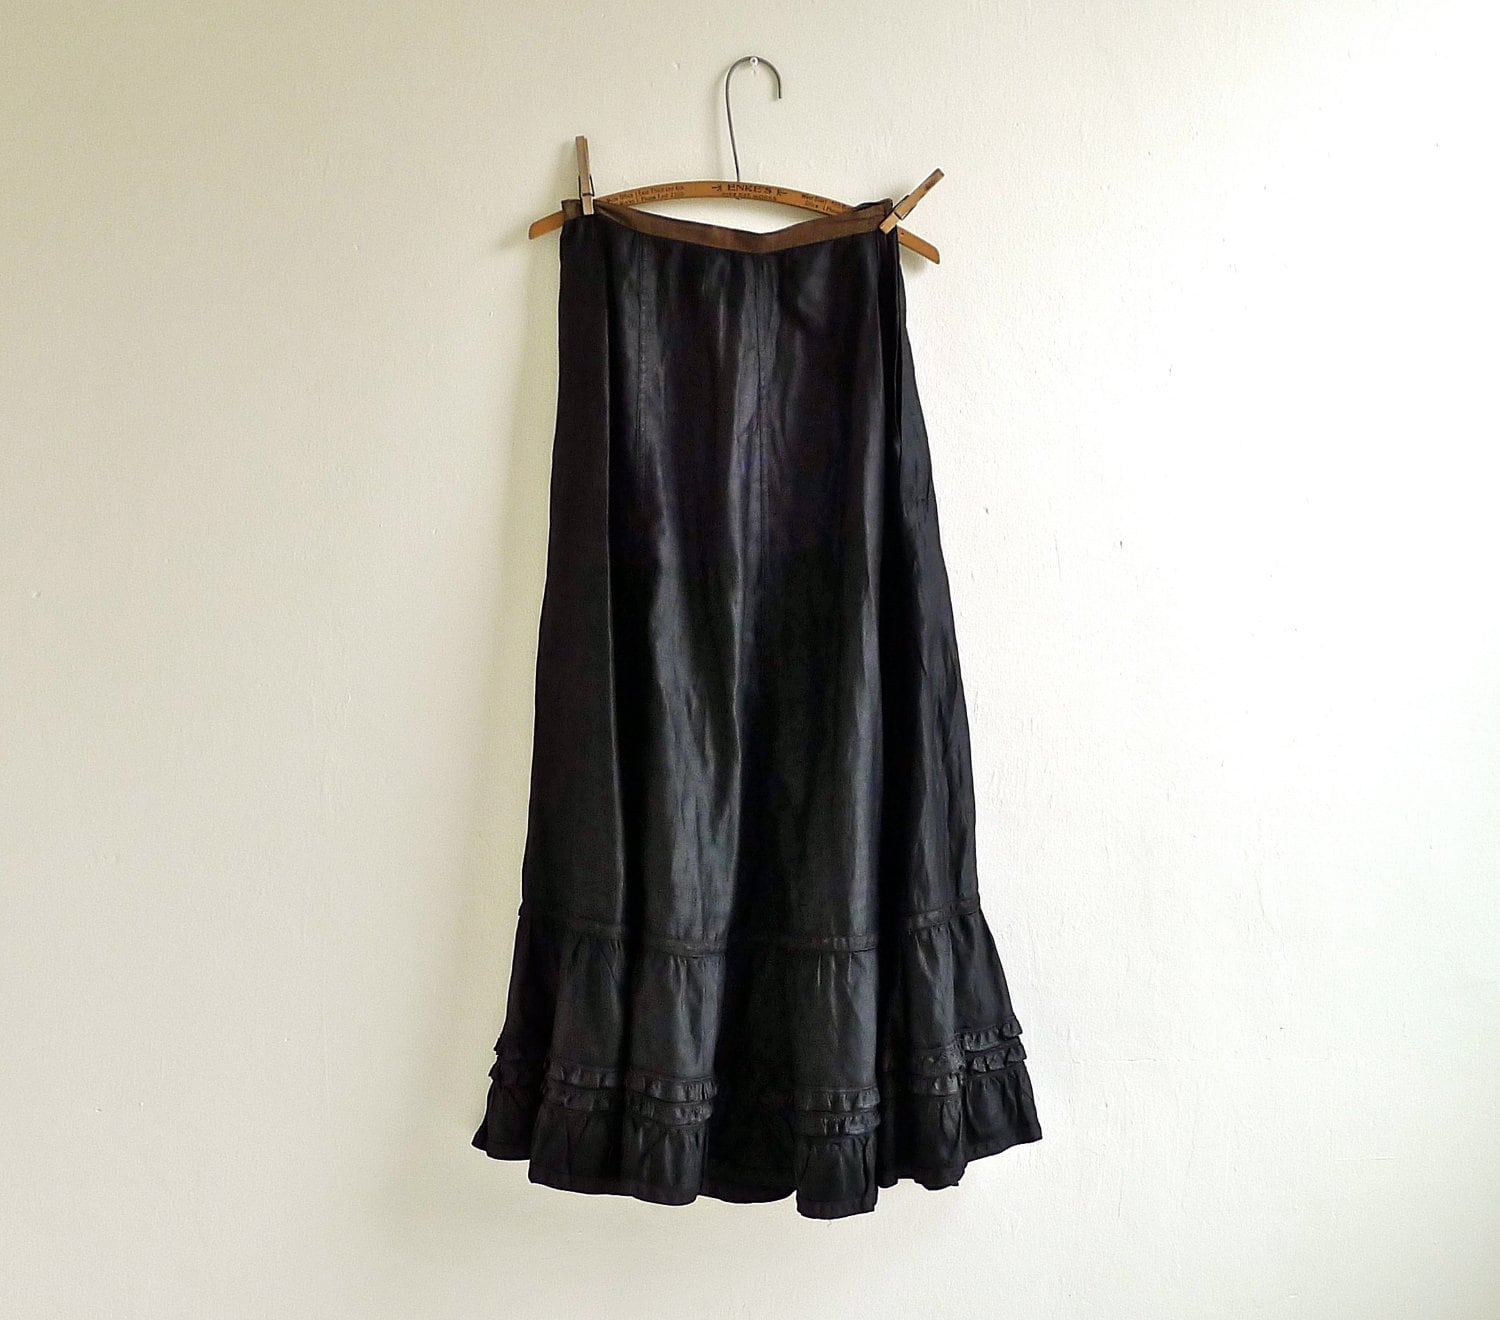 Antique Victorian Mourning Skirt - marybethhale